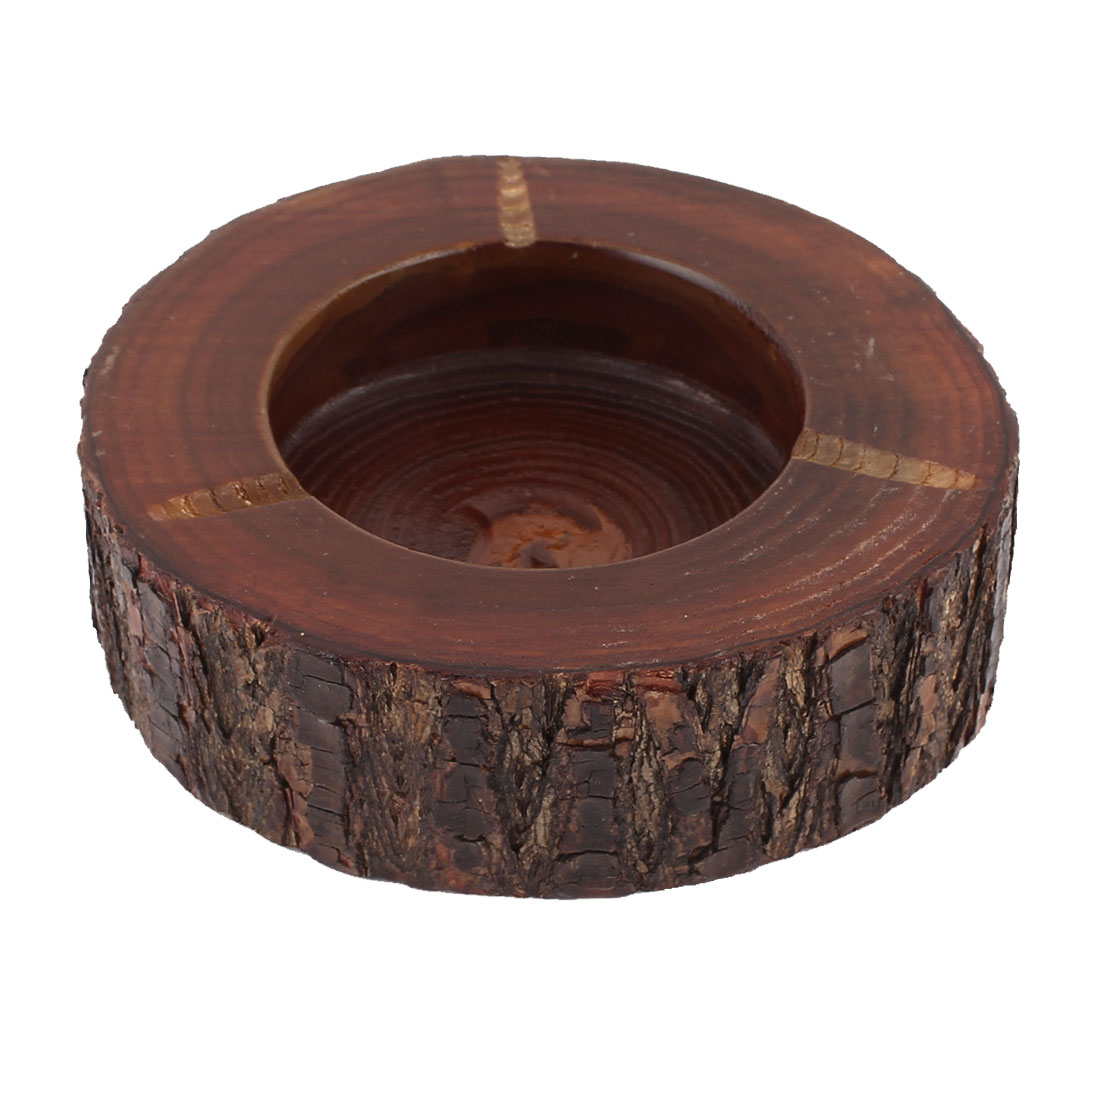 Home Office Brown Wooden Round Cigarette Ash Holder Ashtray